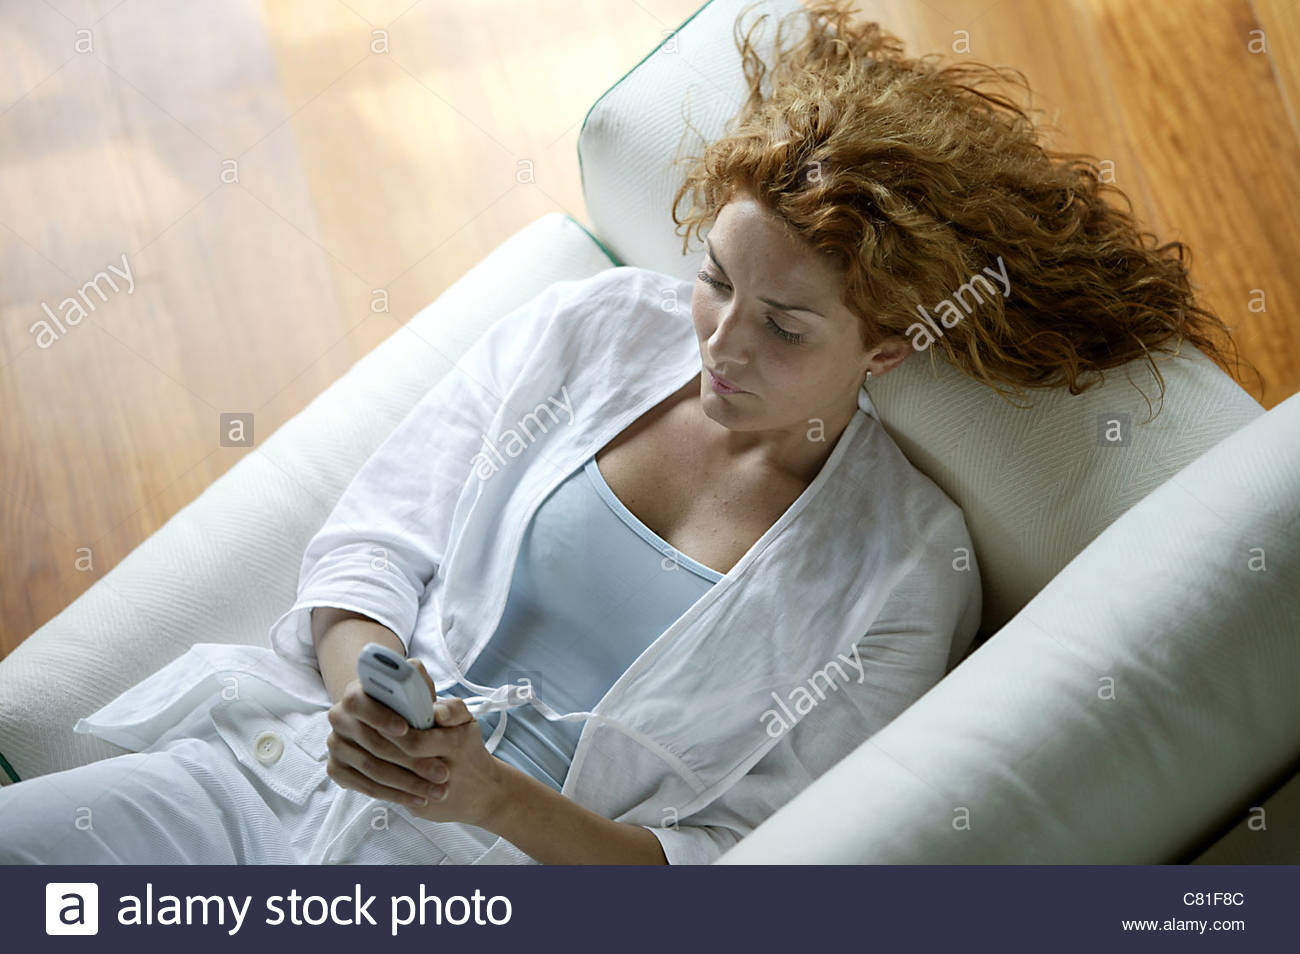 Woman texting - Stock Image